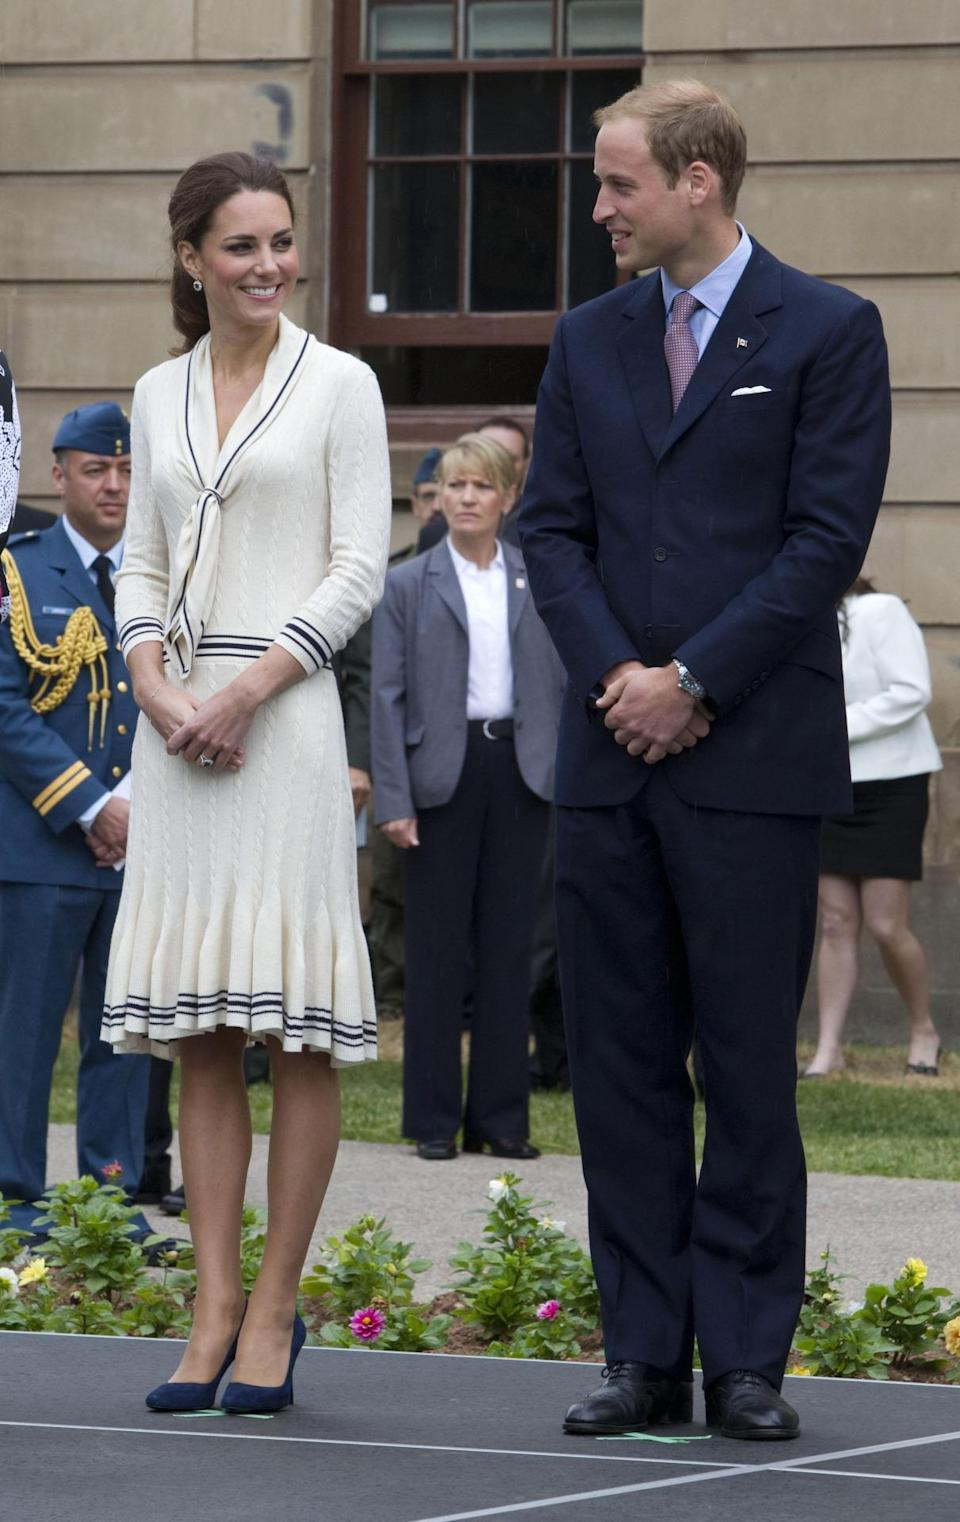 <p>Kate donned a knitted sailor dress by Alexander McQueen and navy pumps for a day in Canada. </p><p><i>[Photo: PA]</i></p>